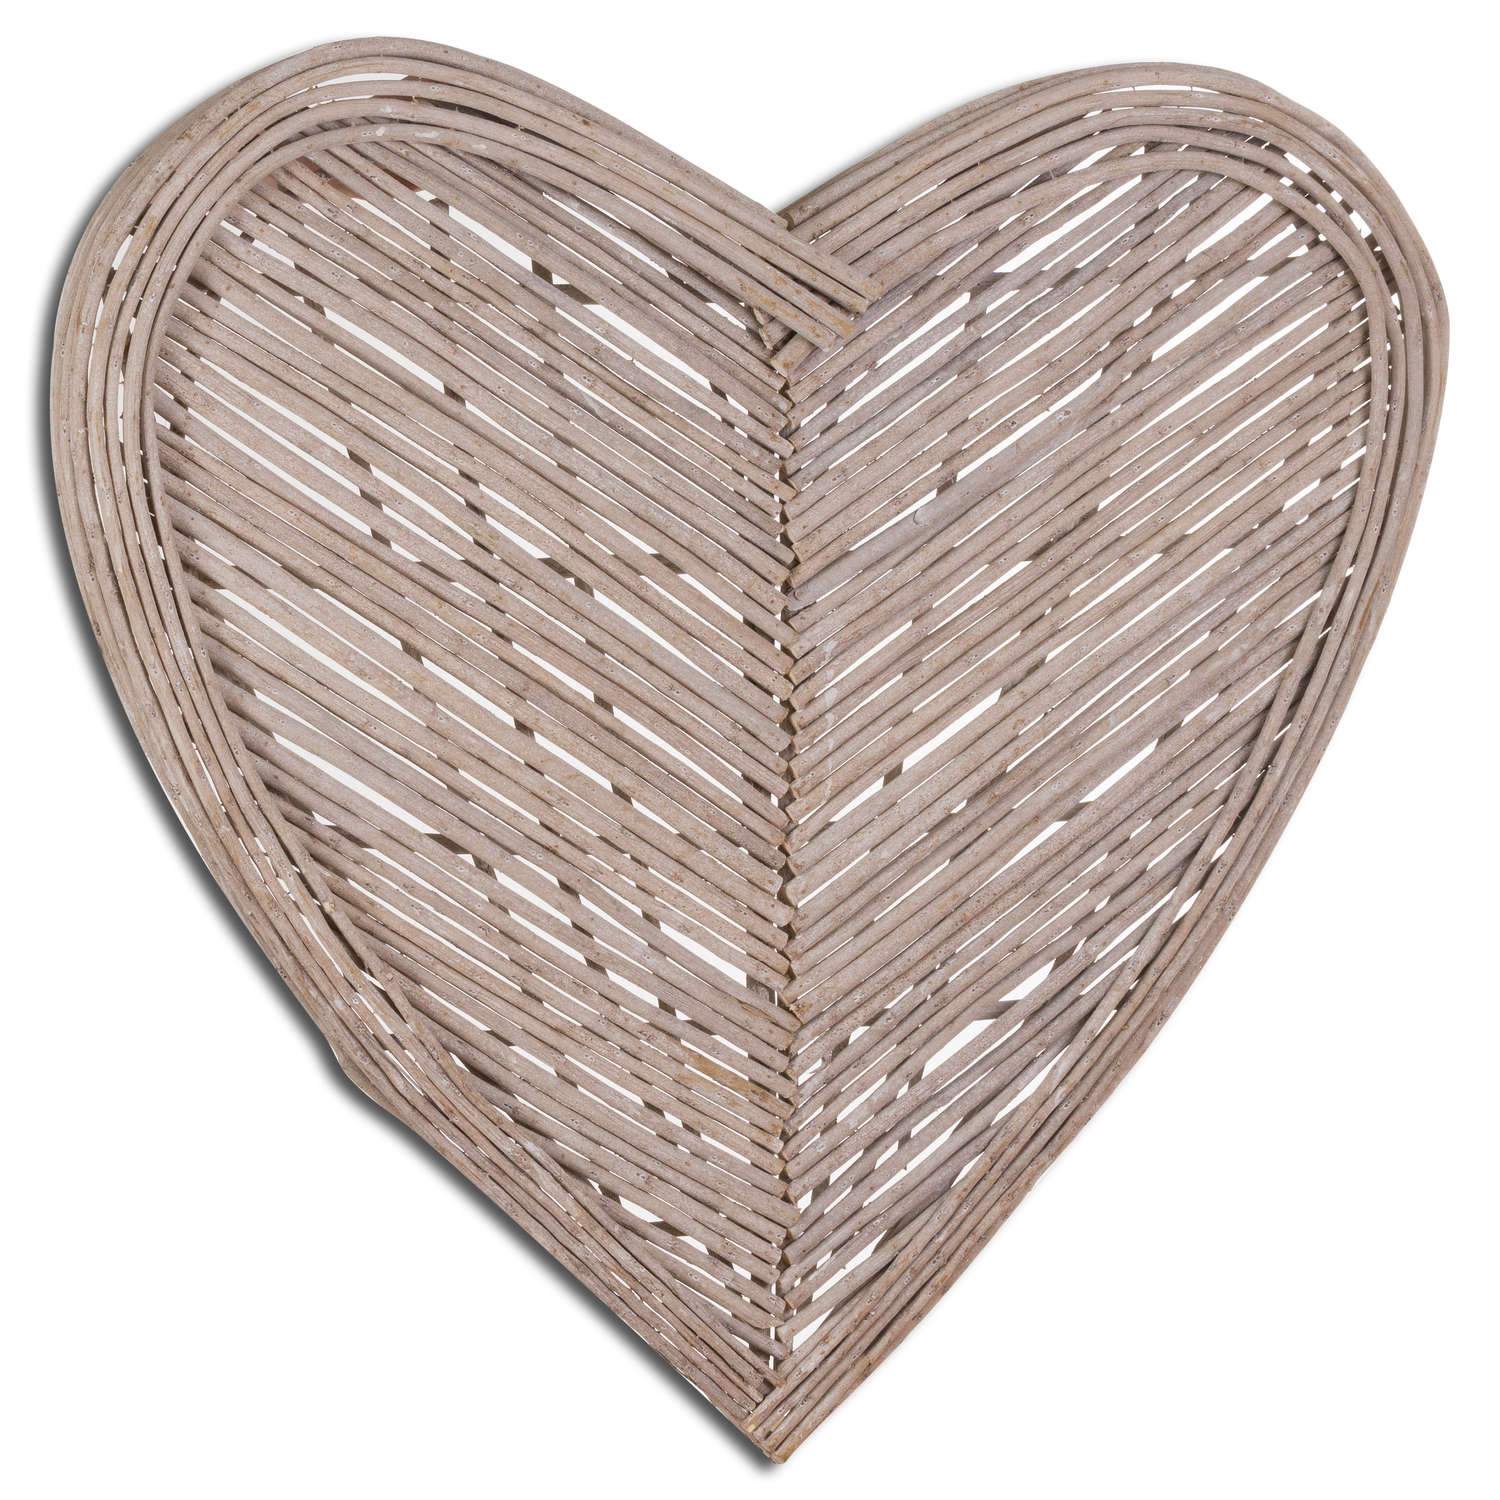 Large Heart Wicker Wall Art